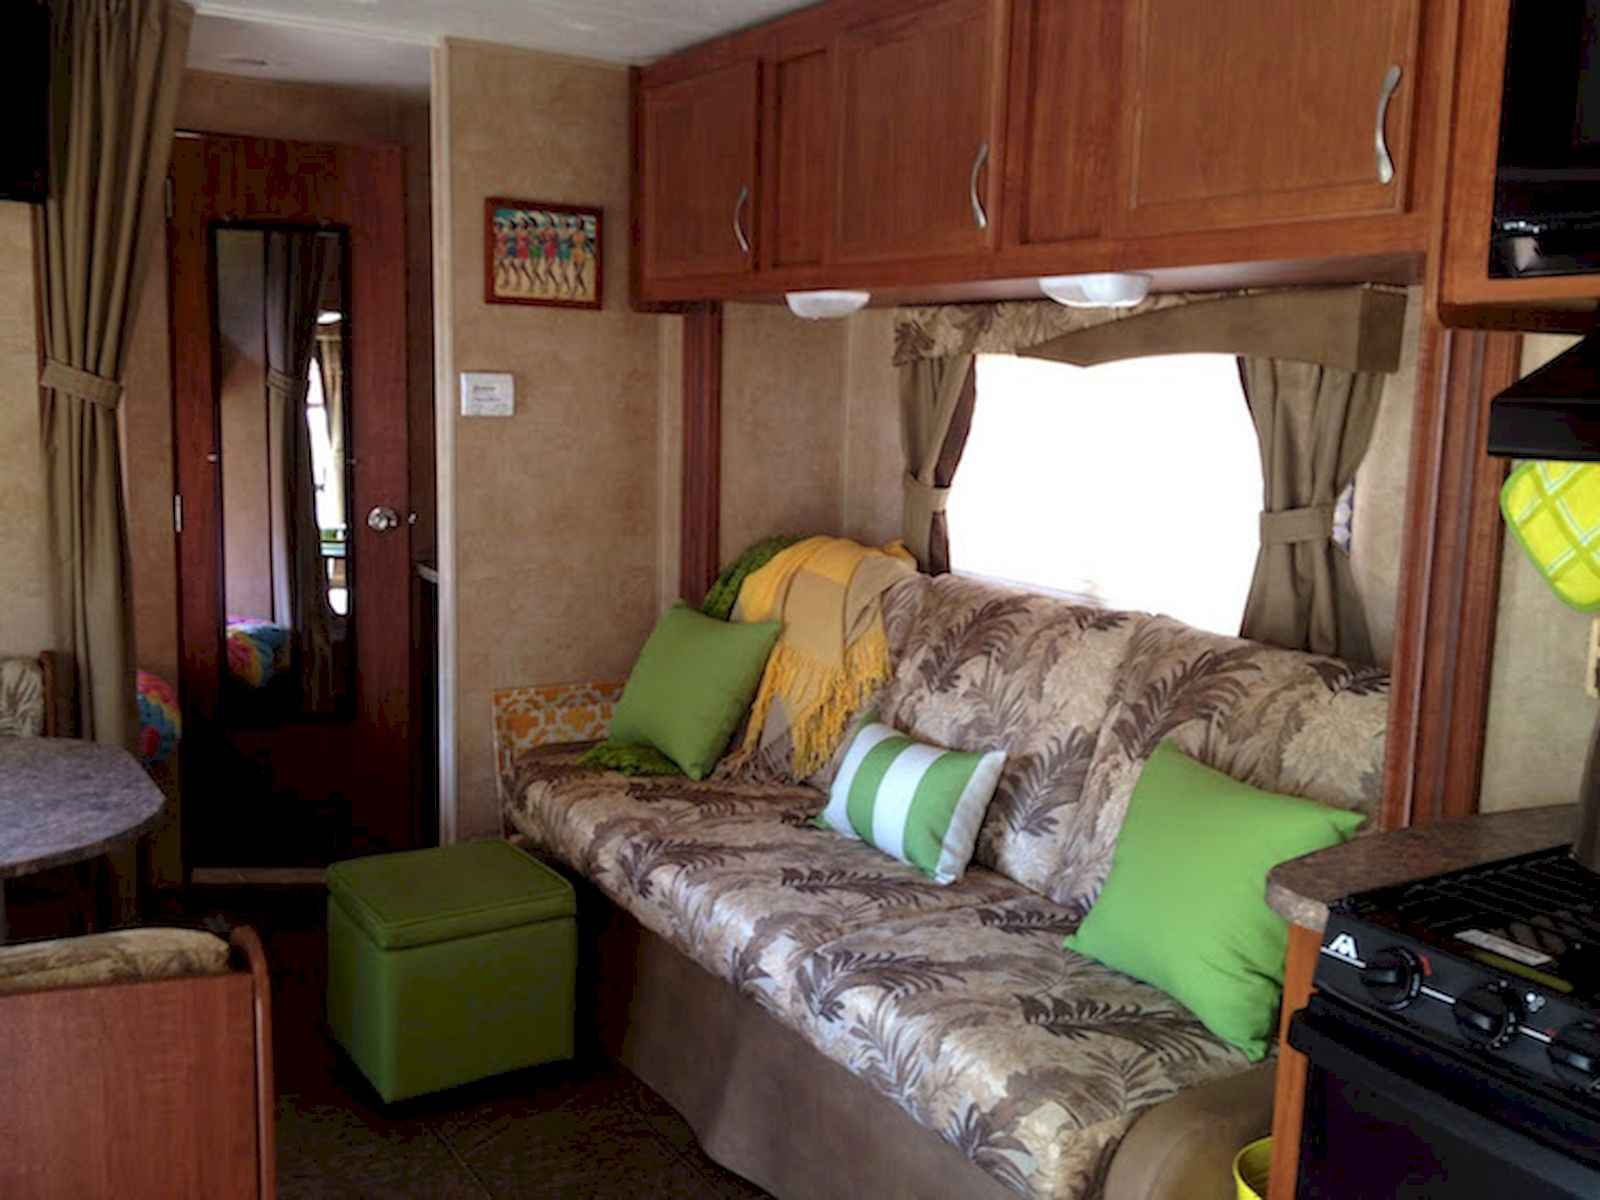 70 Stunning RV Living Camper Room Ideas Decorations Make Your Summer Awesome (51)